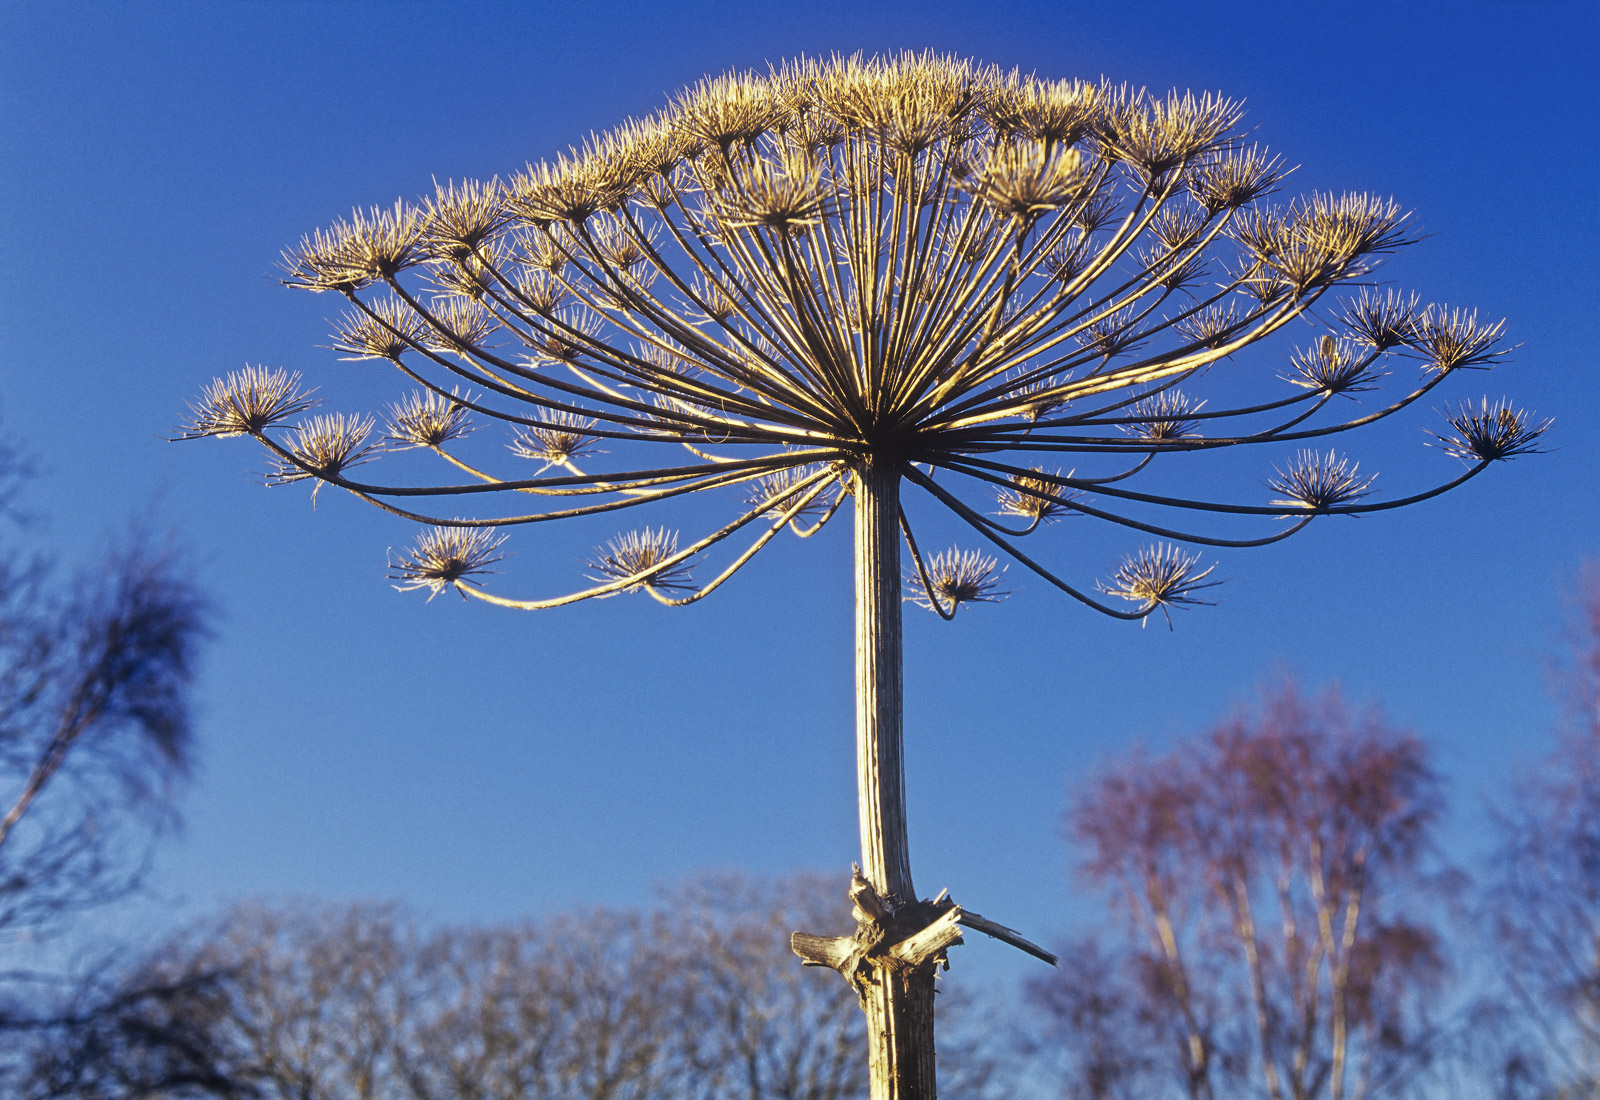 Giant hogweed is nasty stuff. When alive and in flower the sap is toxic enough to cause severe skin irritation and it takes...